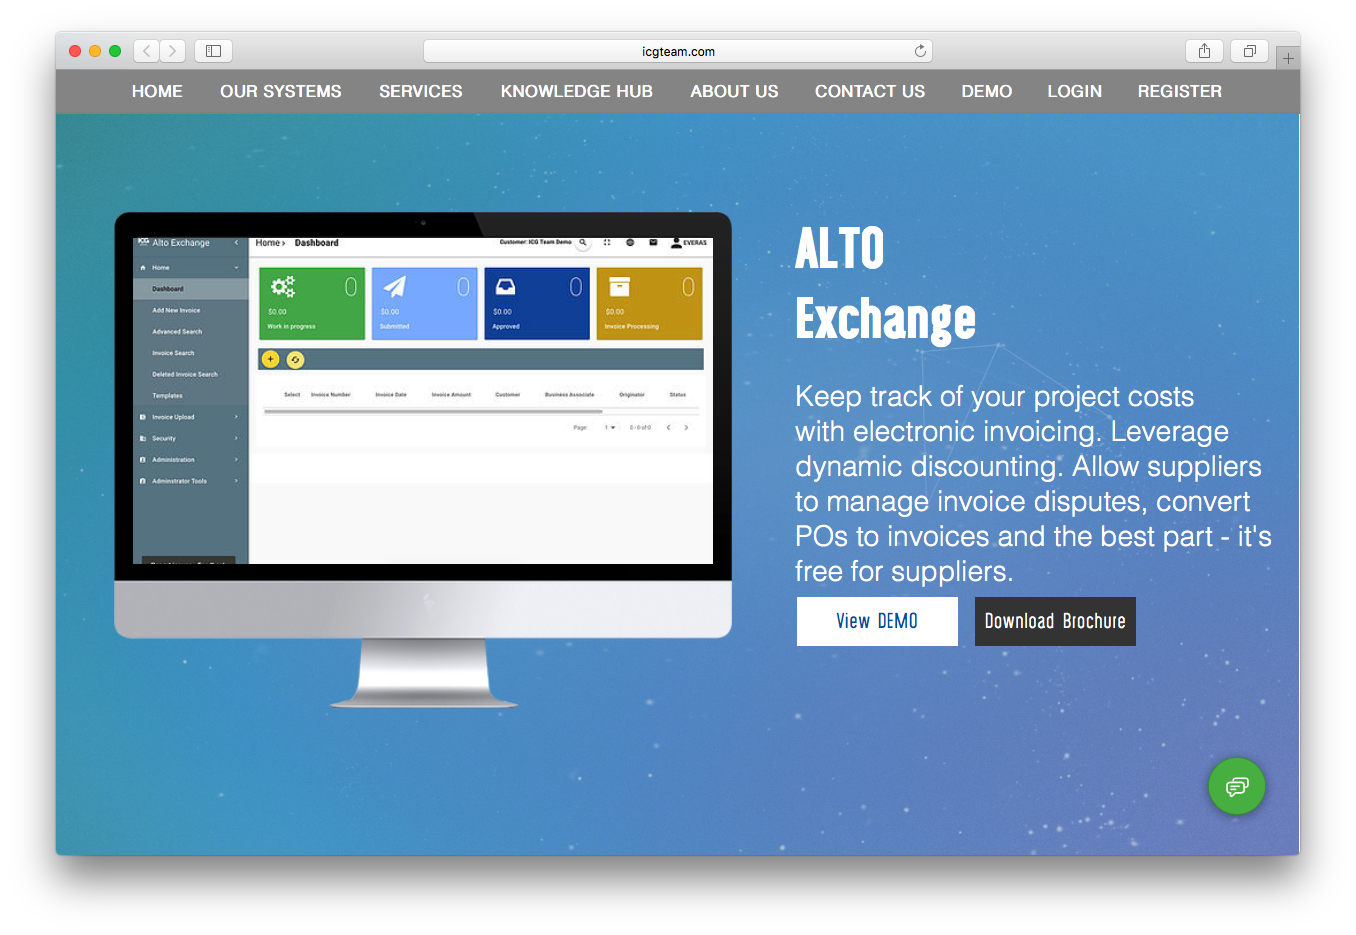 ALTO exchange electronic invoicing project costs dynamic discounting invoice disputes